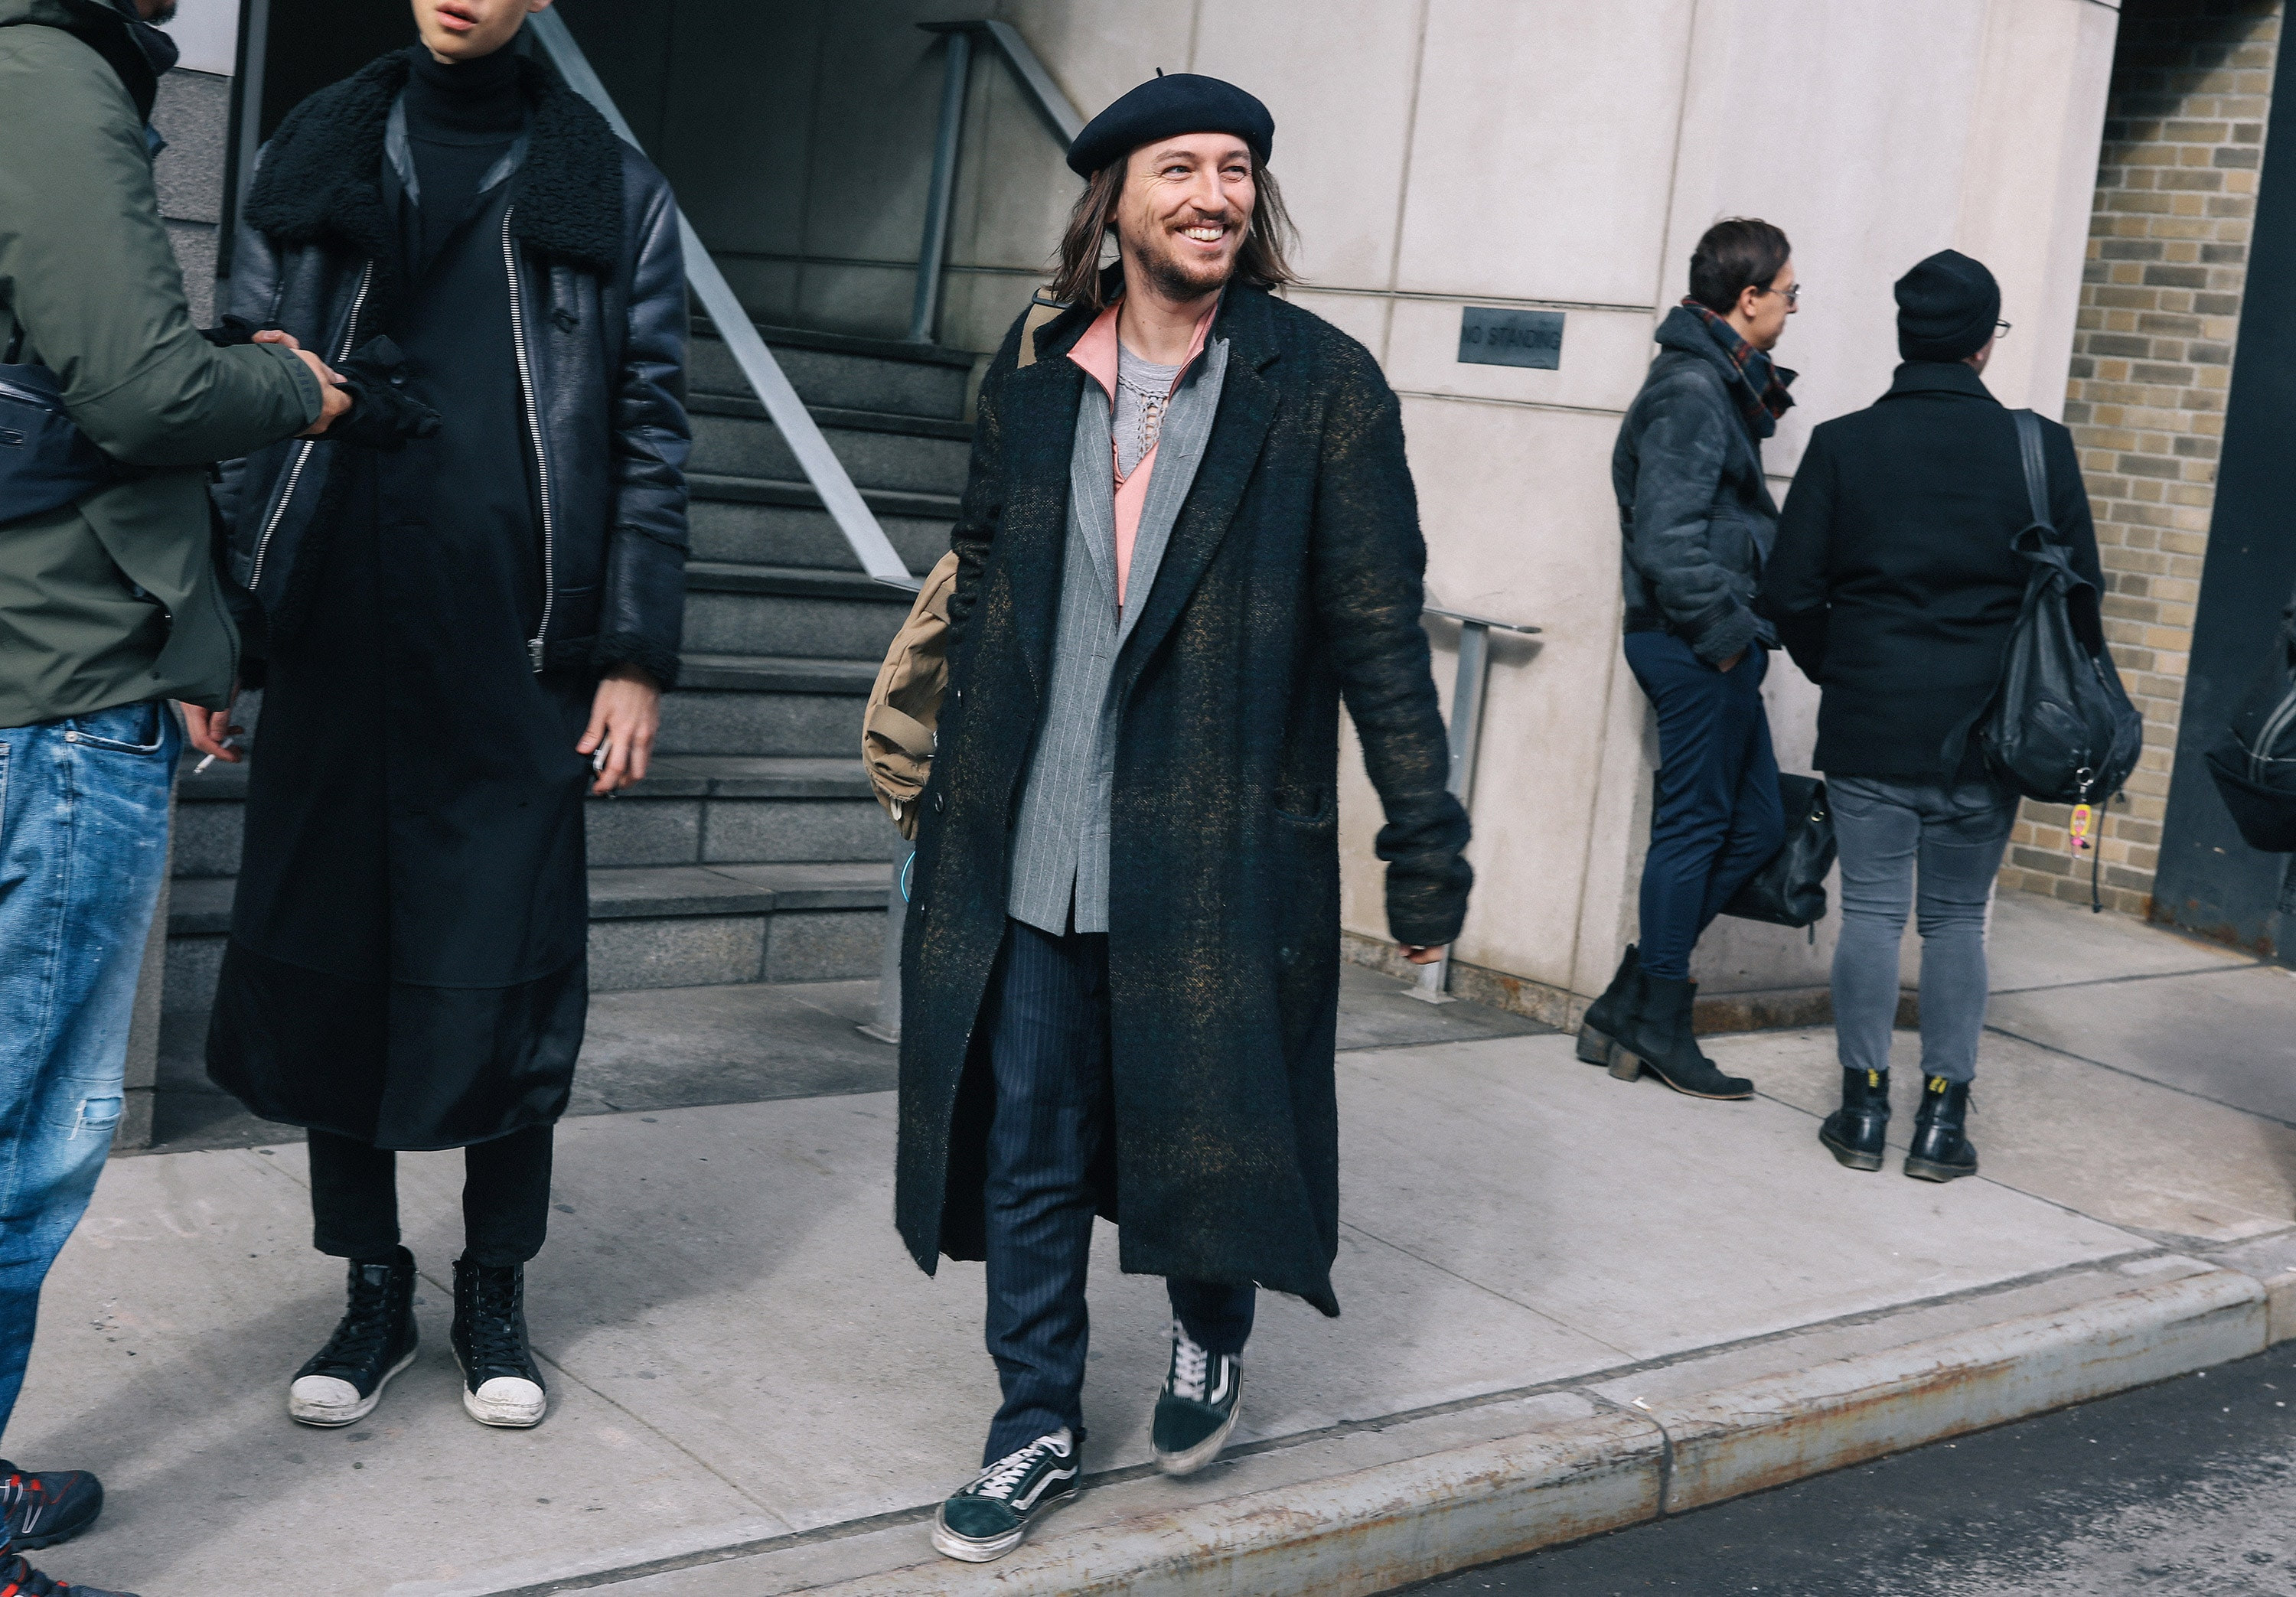 http://assets.vogue.com/photos/589364fe12a7b1df212ca3f2/master/pass/15-phil-oh-mens-nyfw-day-2-2017.jpg